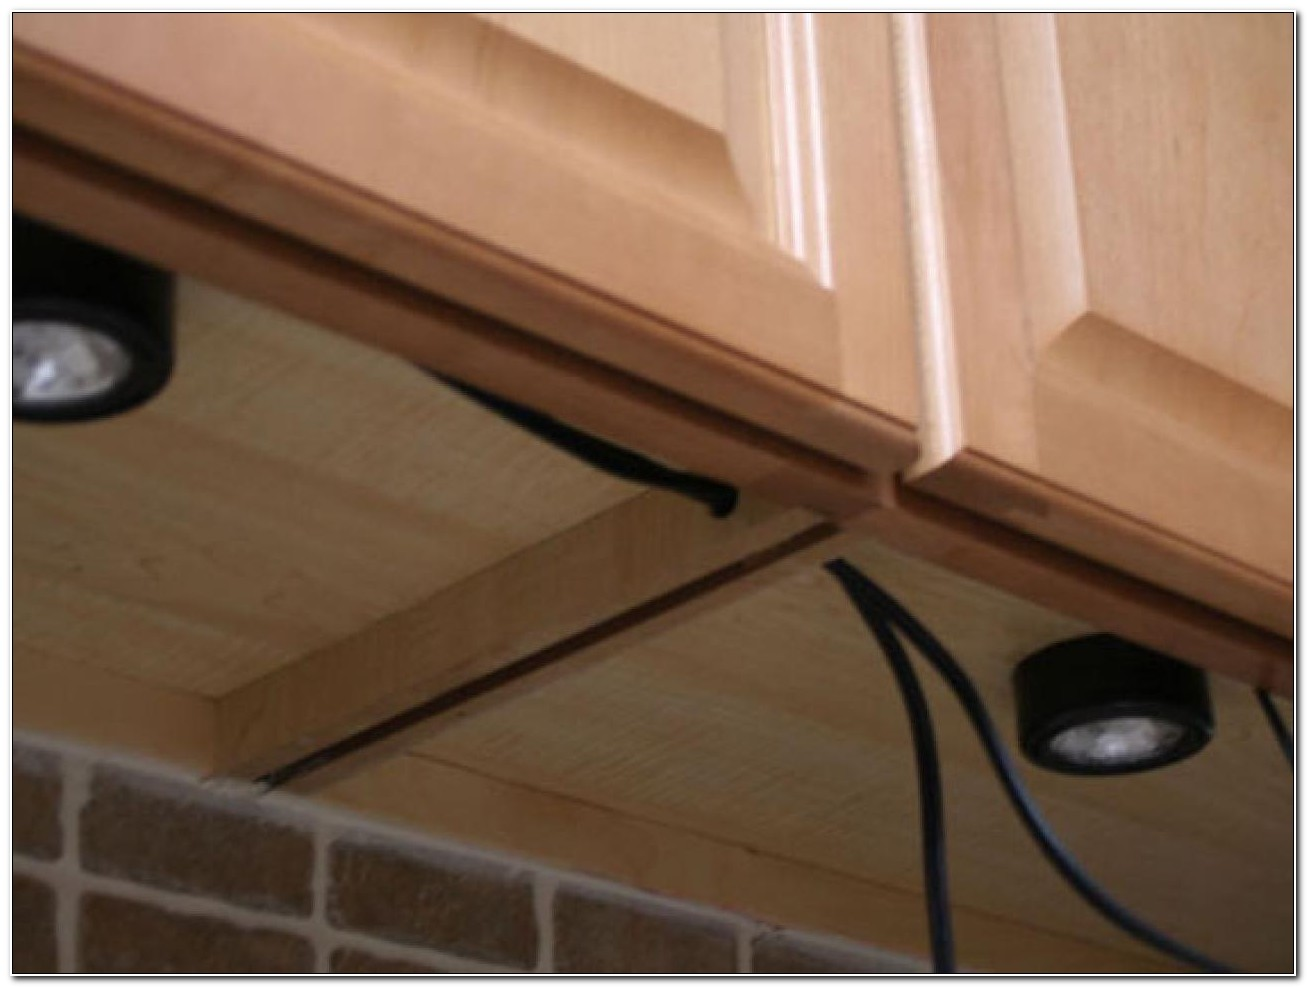 Puck Under Cabinet Lighting Installation